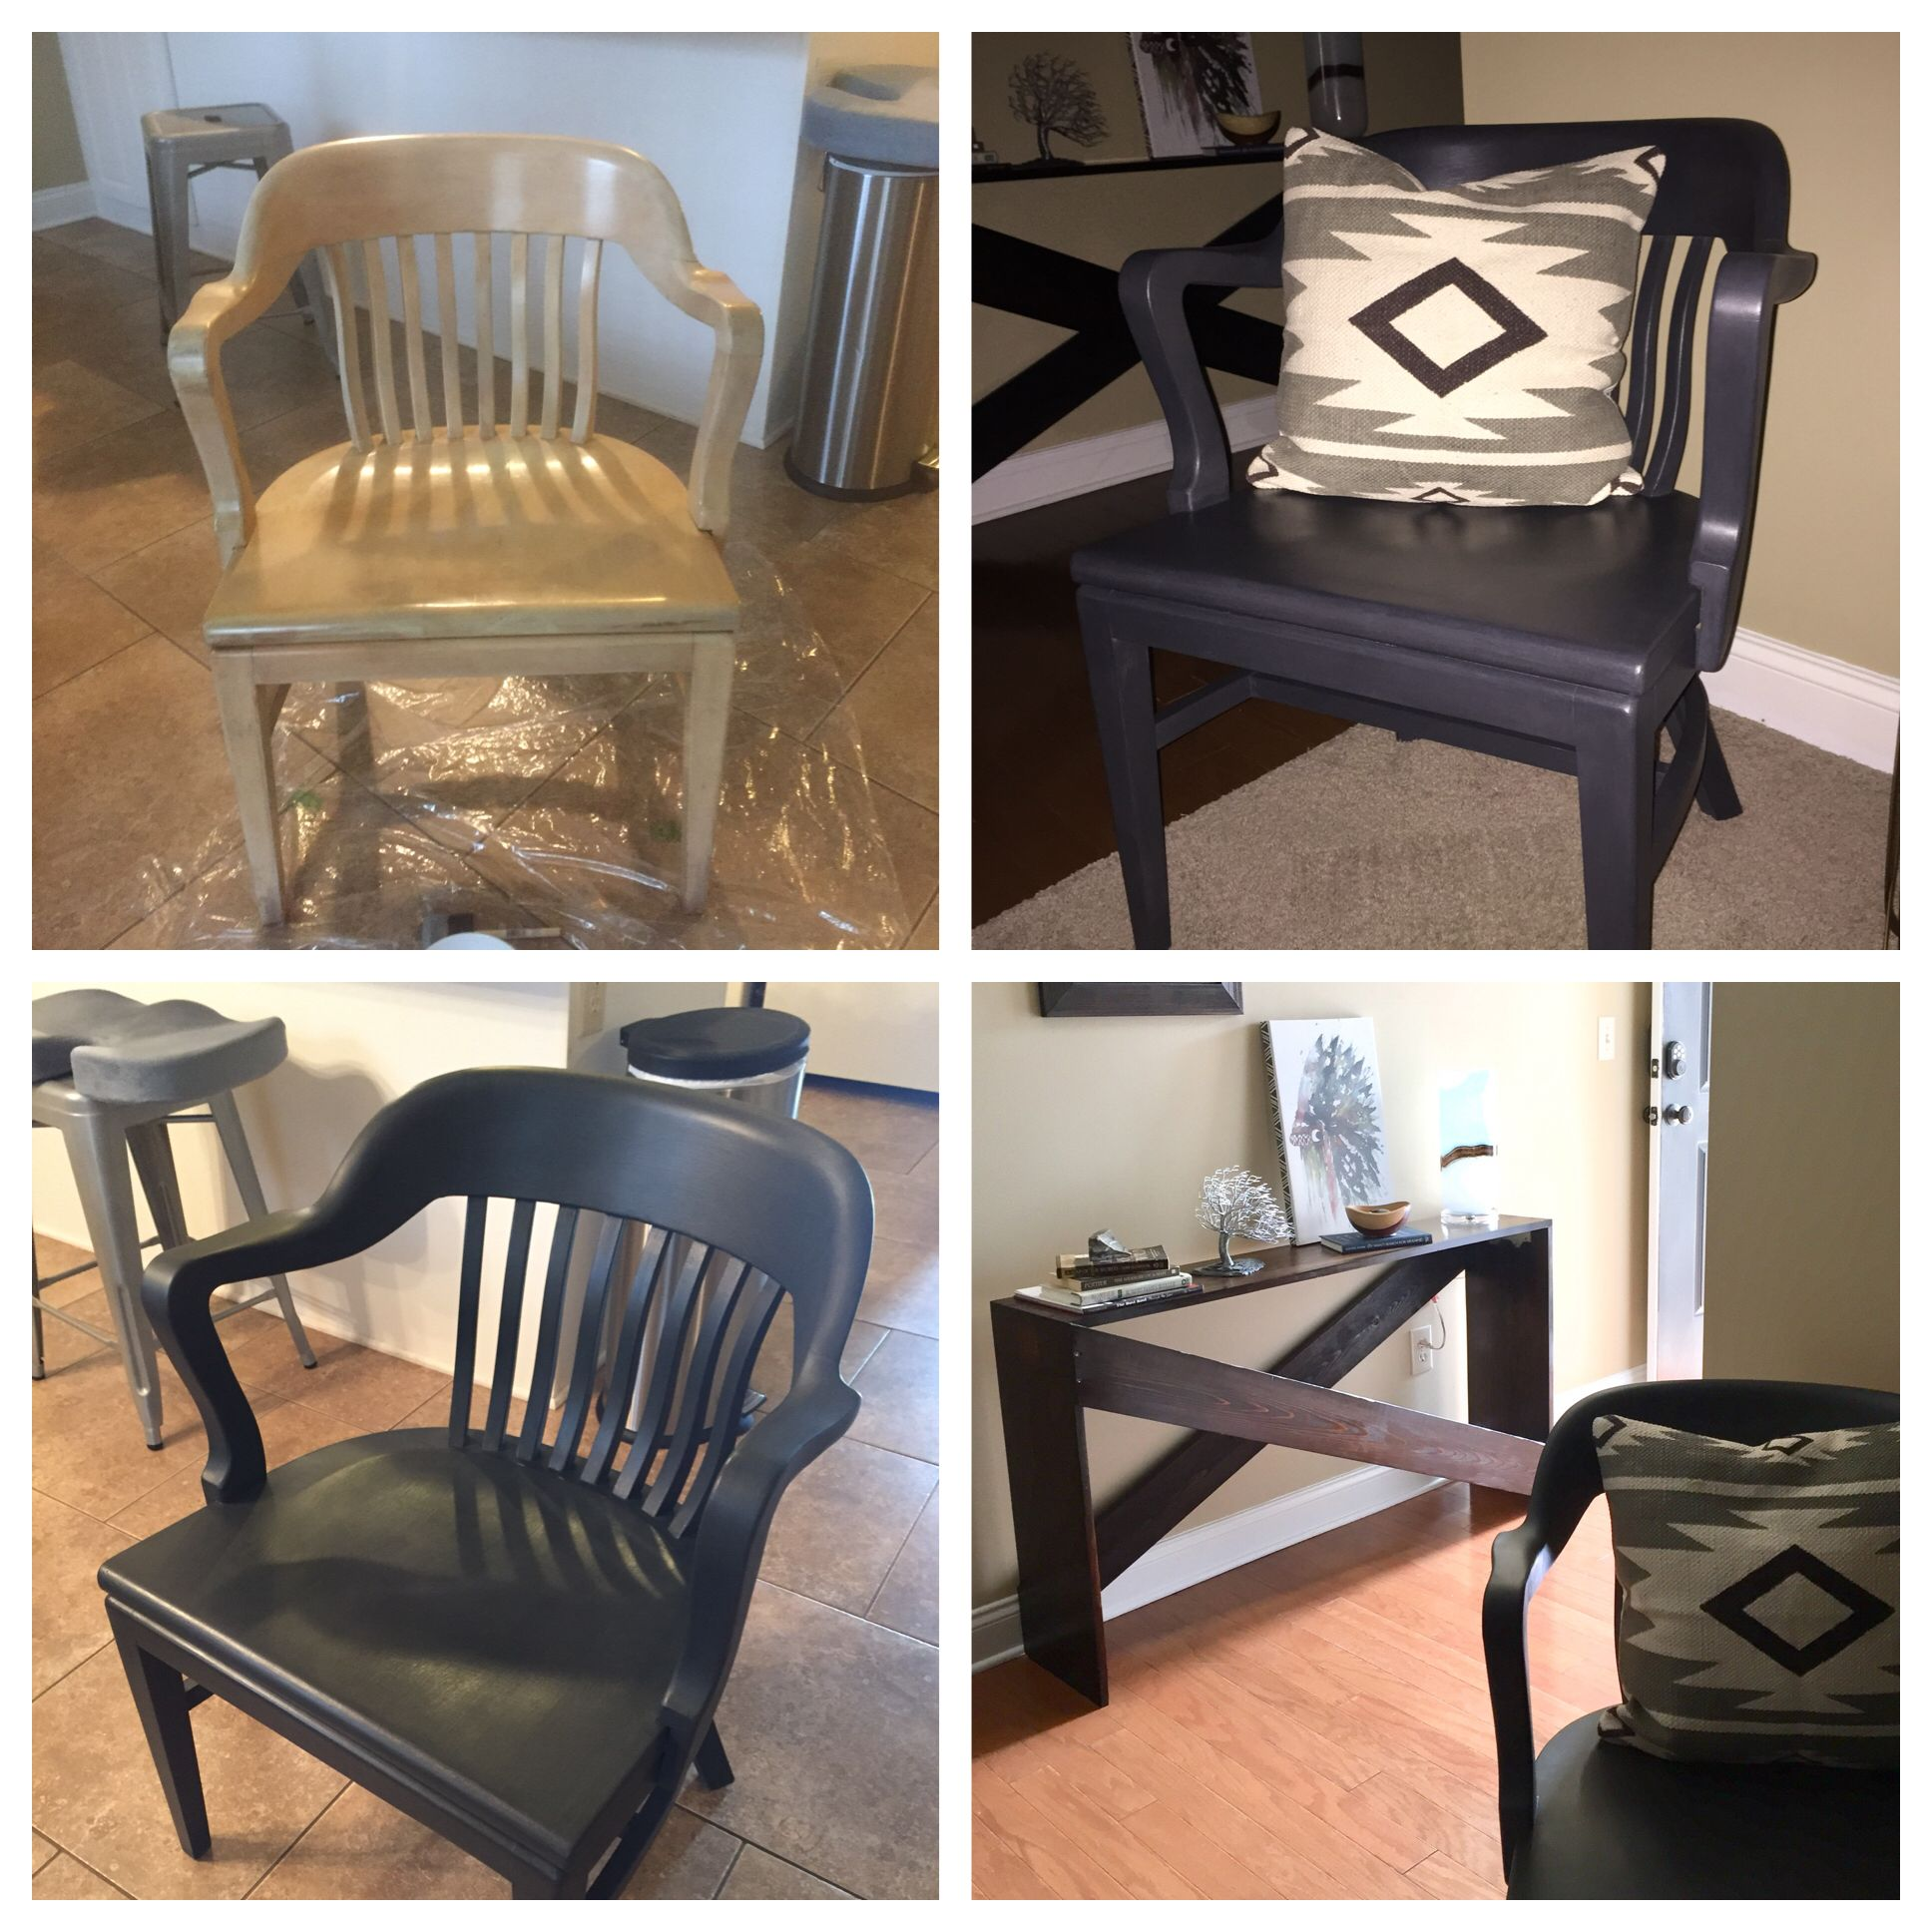 white wood bankers chair with arms